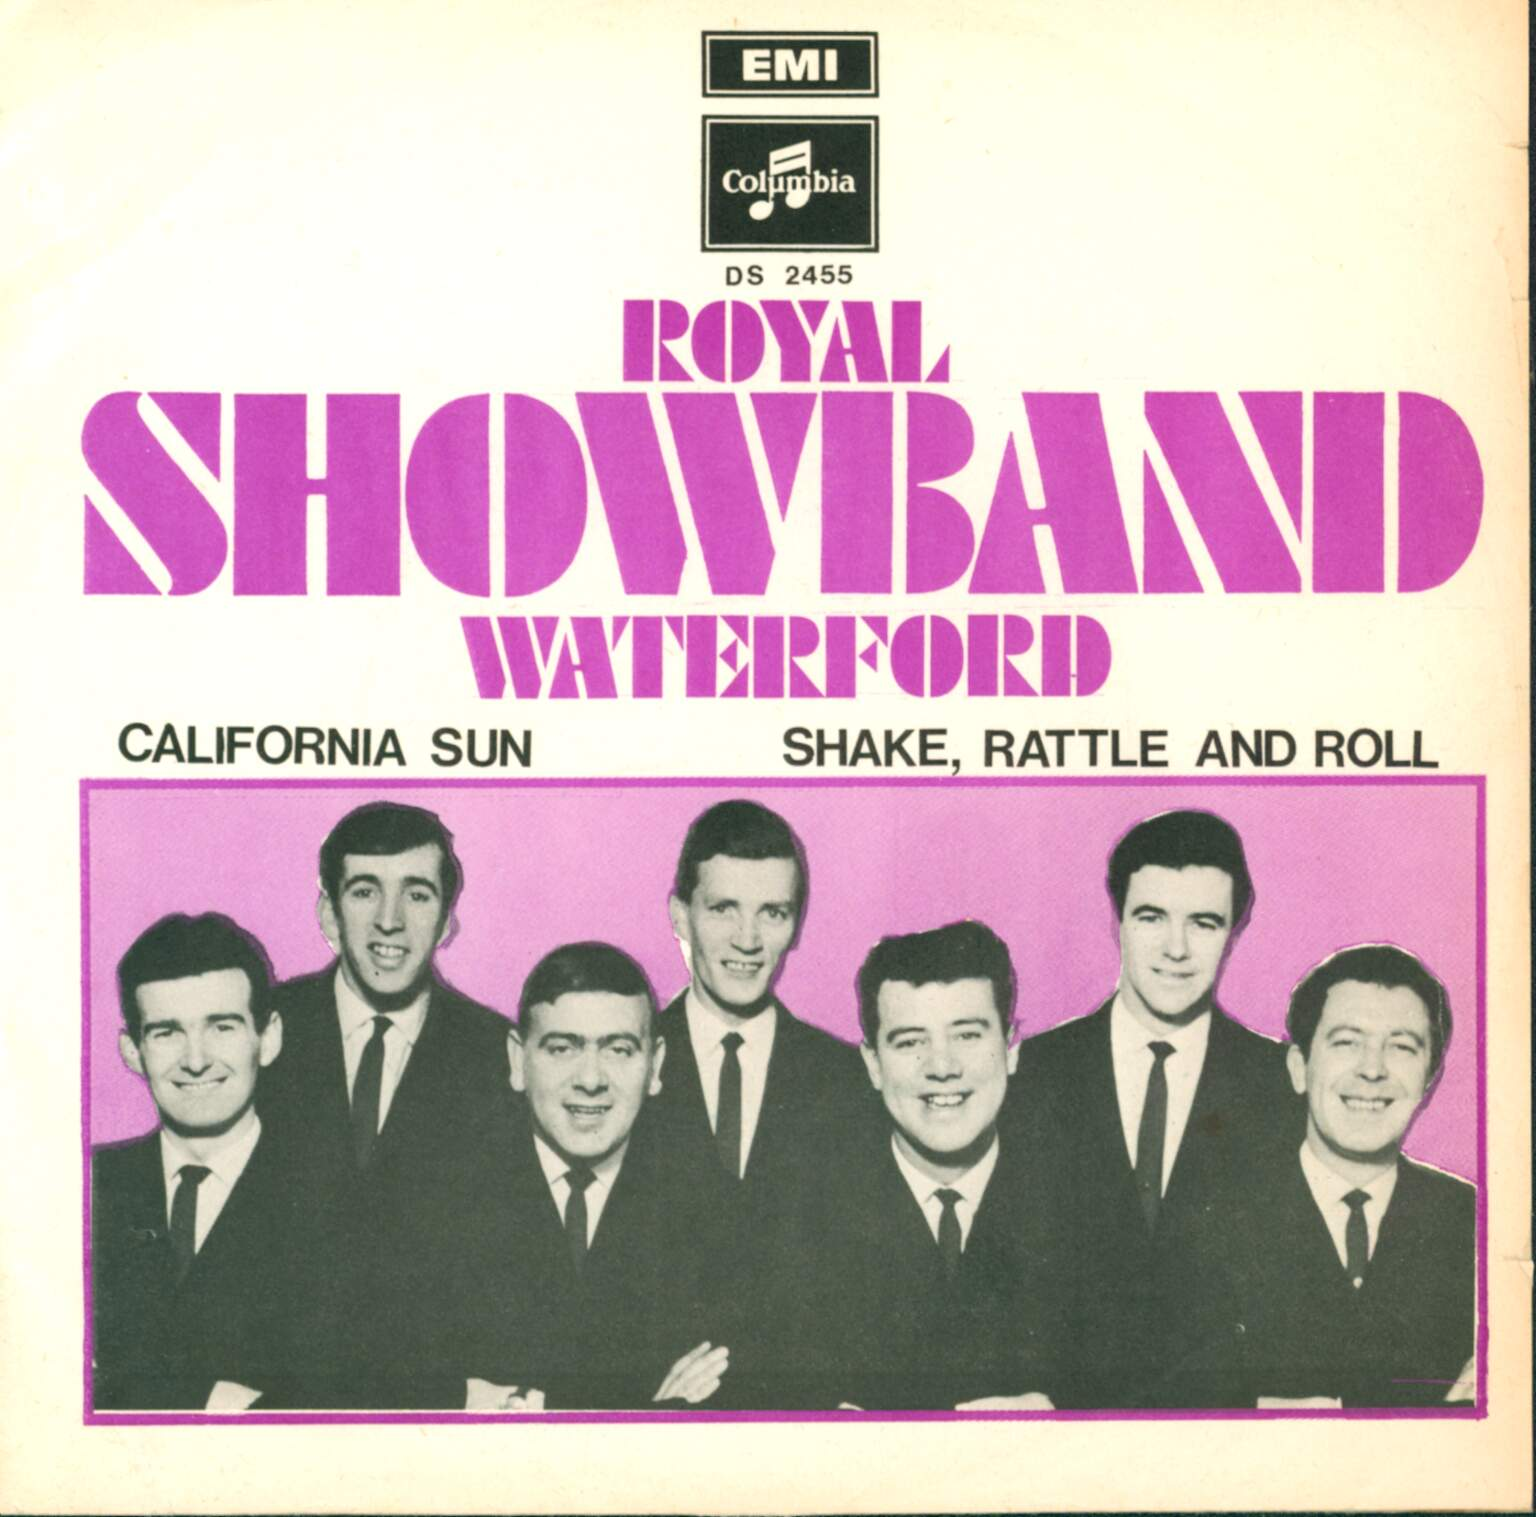 "The Royal Showband Waterford: California Sun, 1×7"" Single (Vinyl)"